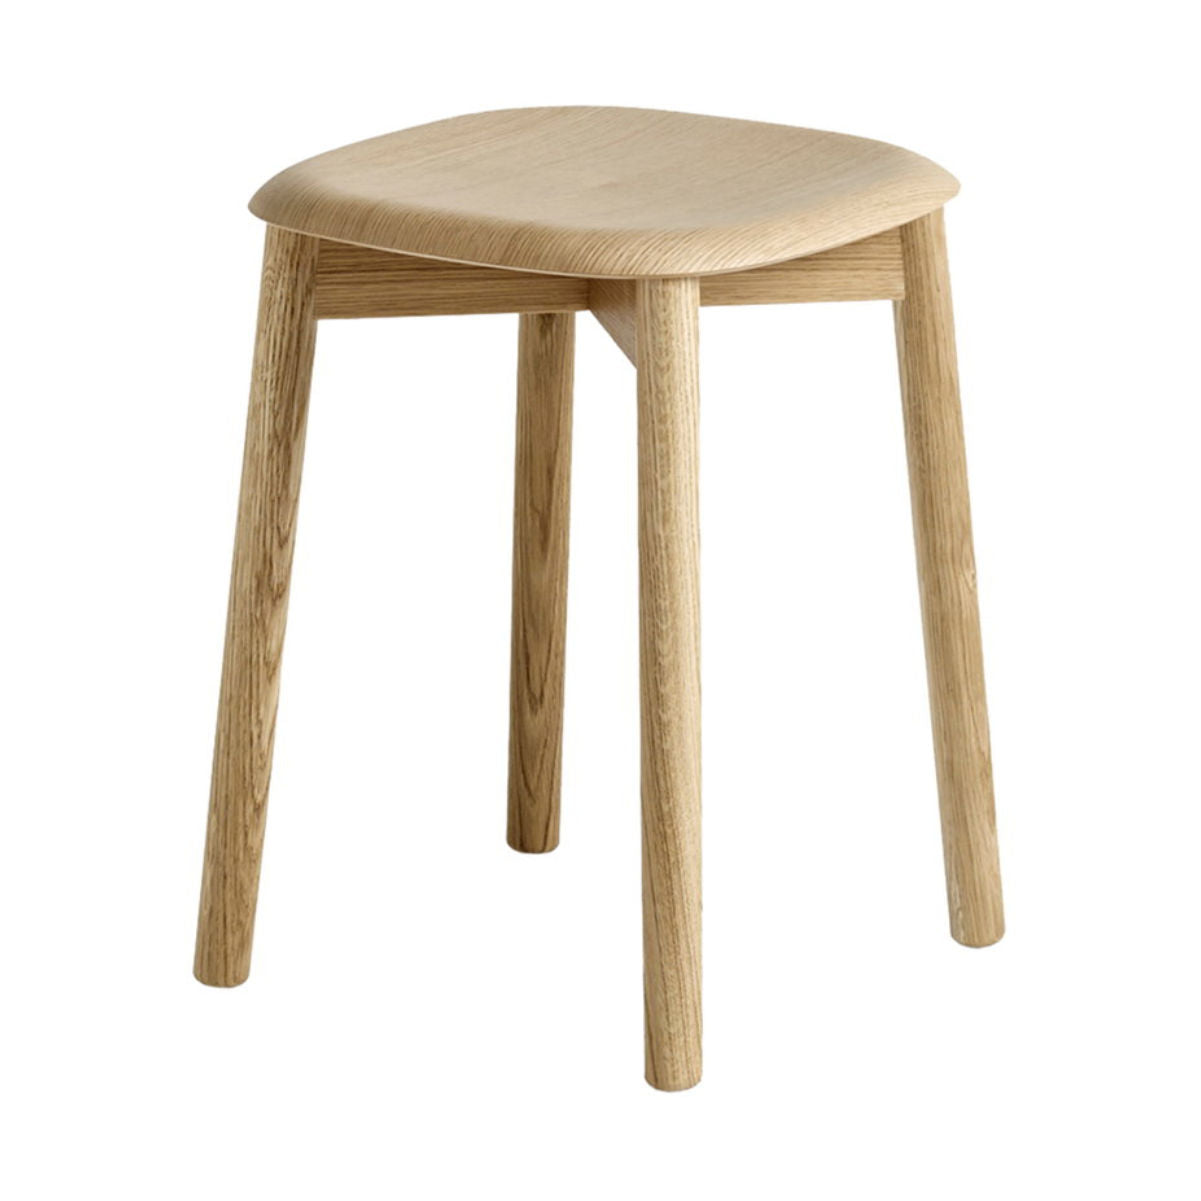 Hay Soft Edge 72 stool